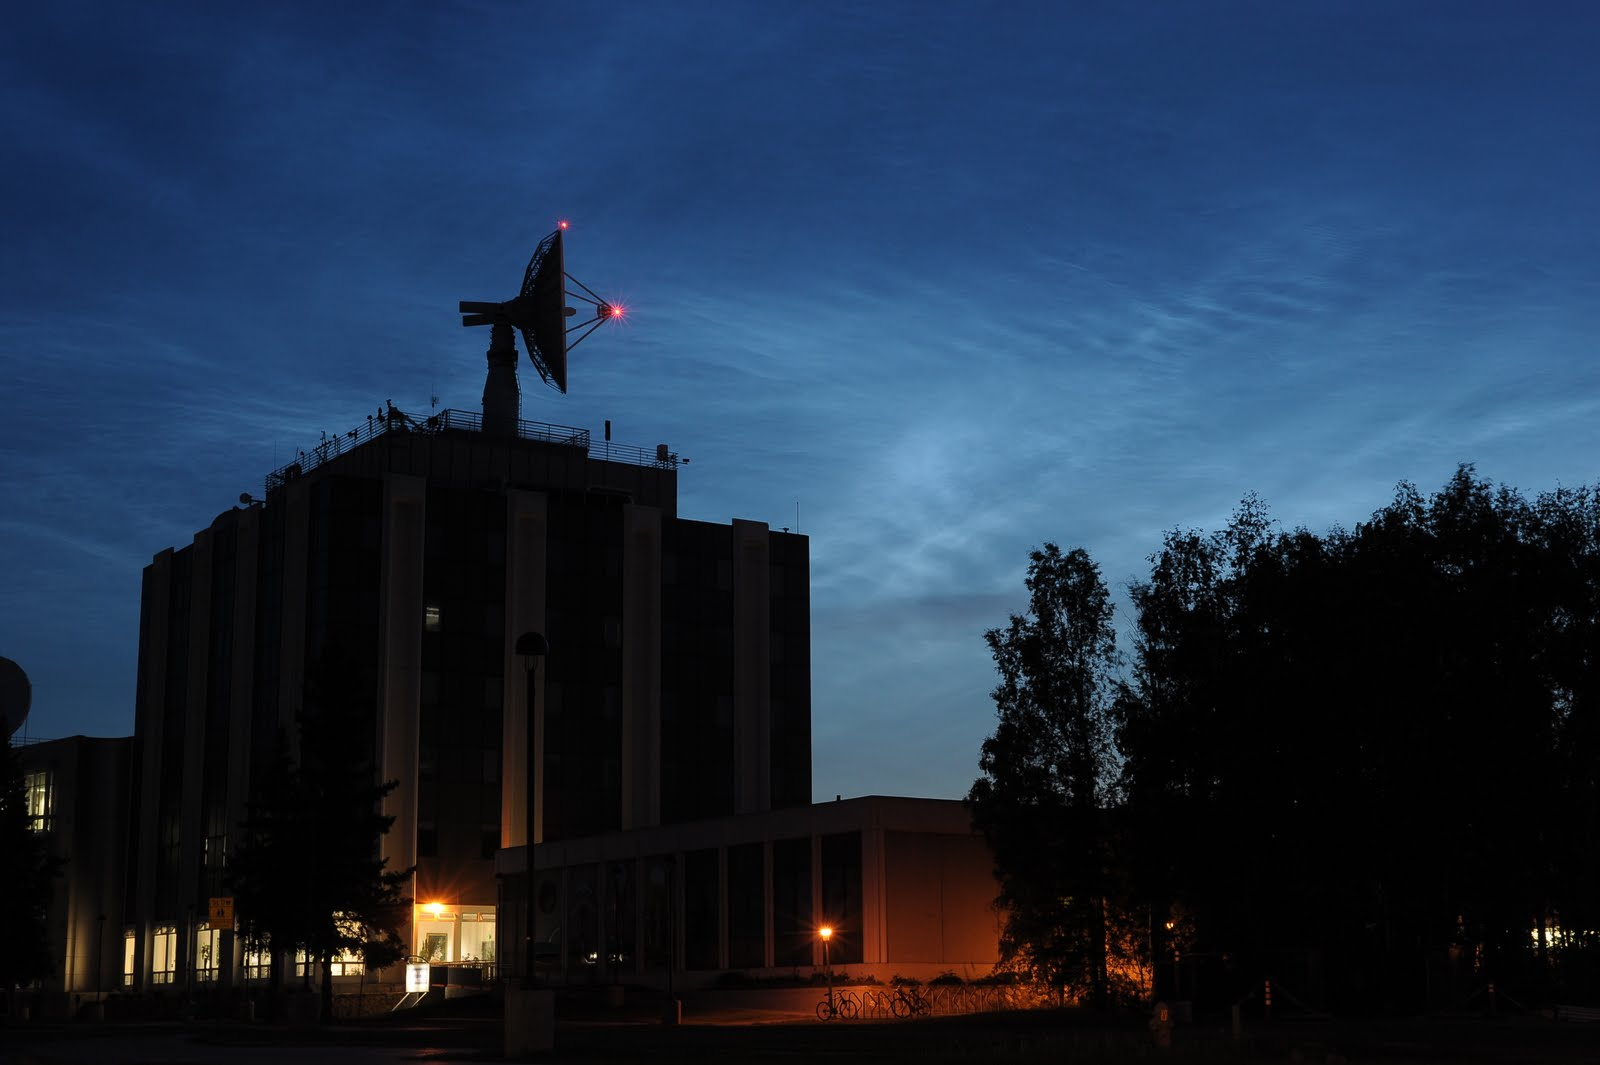 Noctilucent clouds behind the University of Alaska's Geophysical Institute